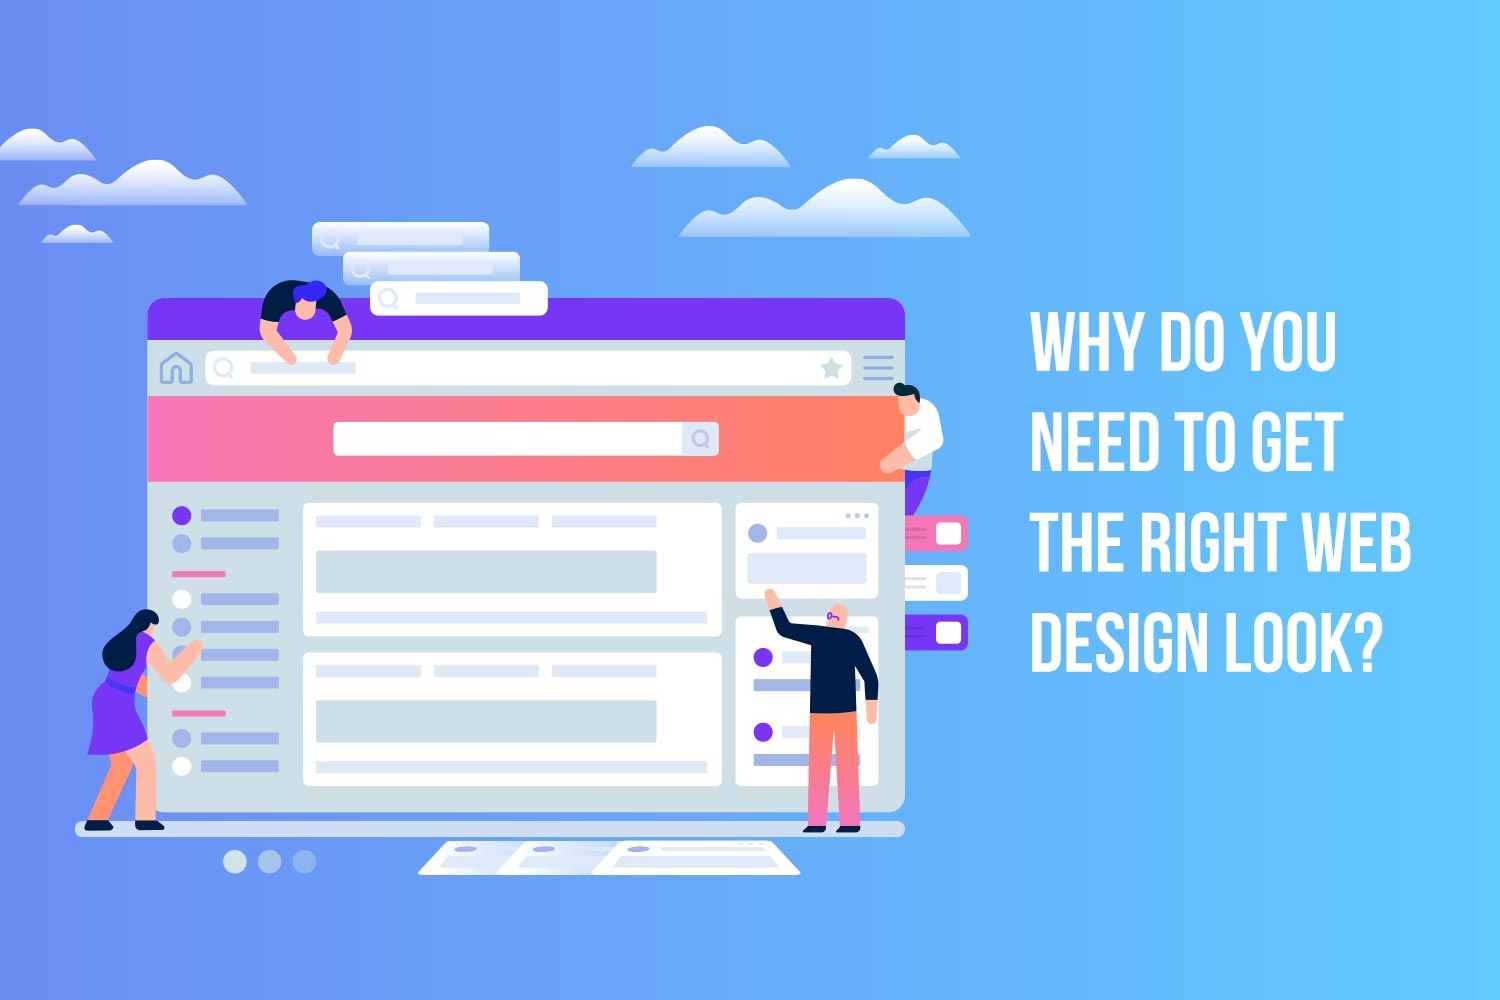 Why-Do-You-Need-To-Get-The-Right-Web-Design-Look-Final